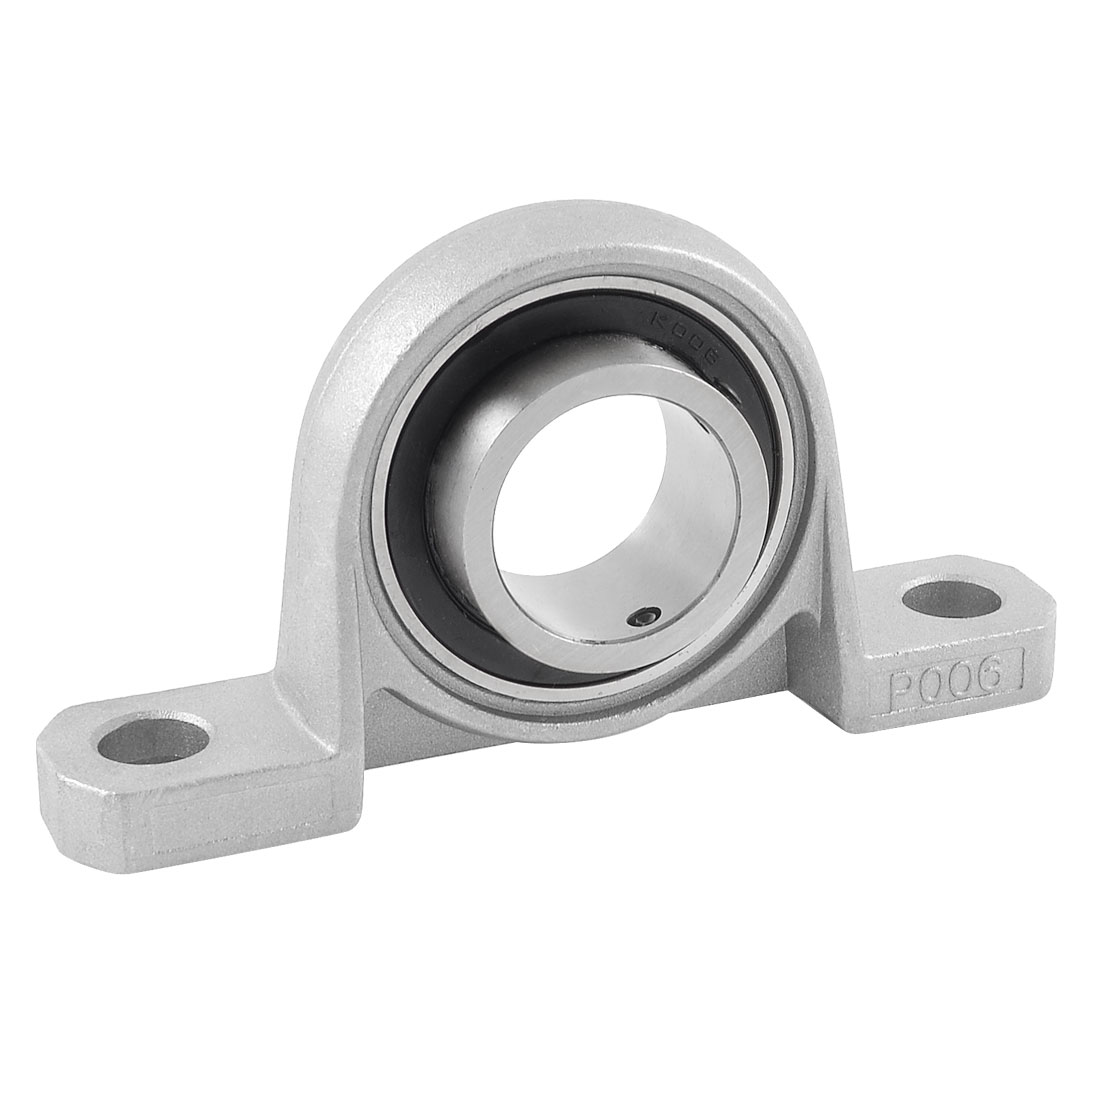 Axle Mounted Ball Self Align 30mm UP006 Pillow Block Bearing